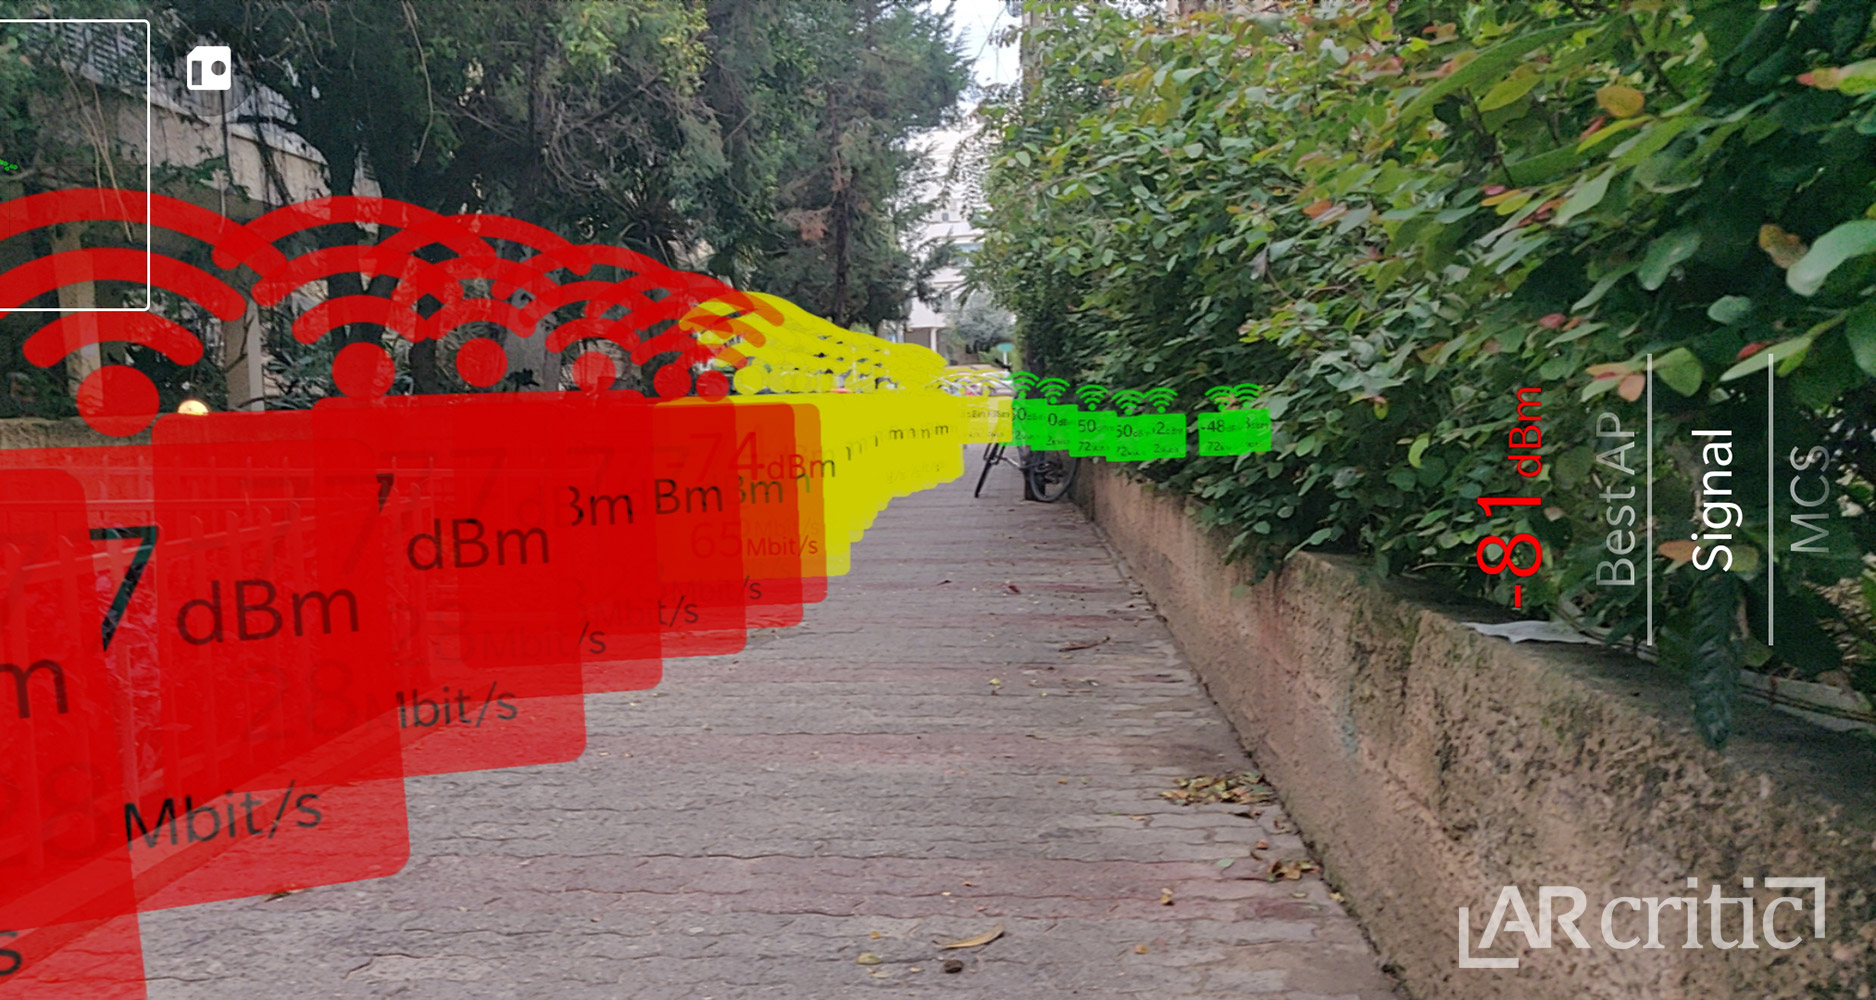 WiFi Signal Strength Mapping Android Apps in Augmented Reality